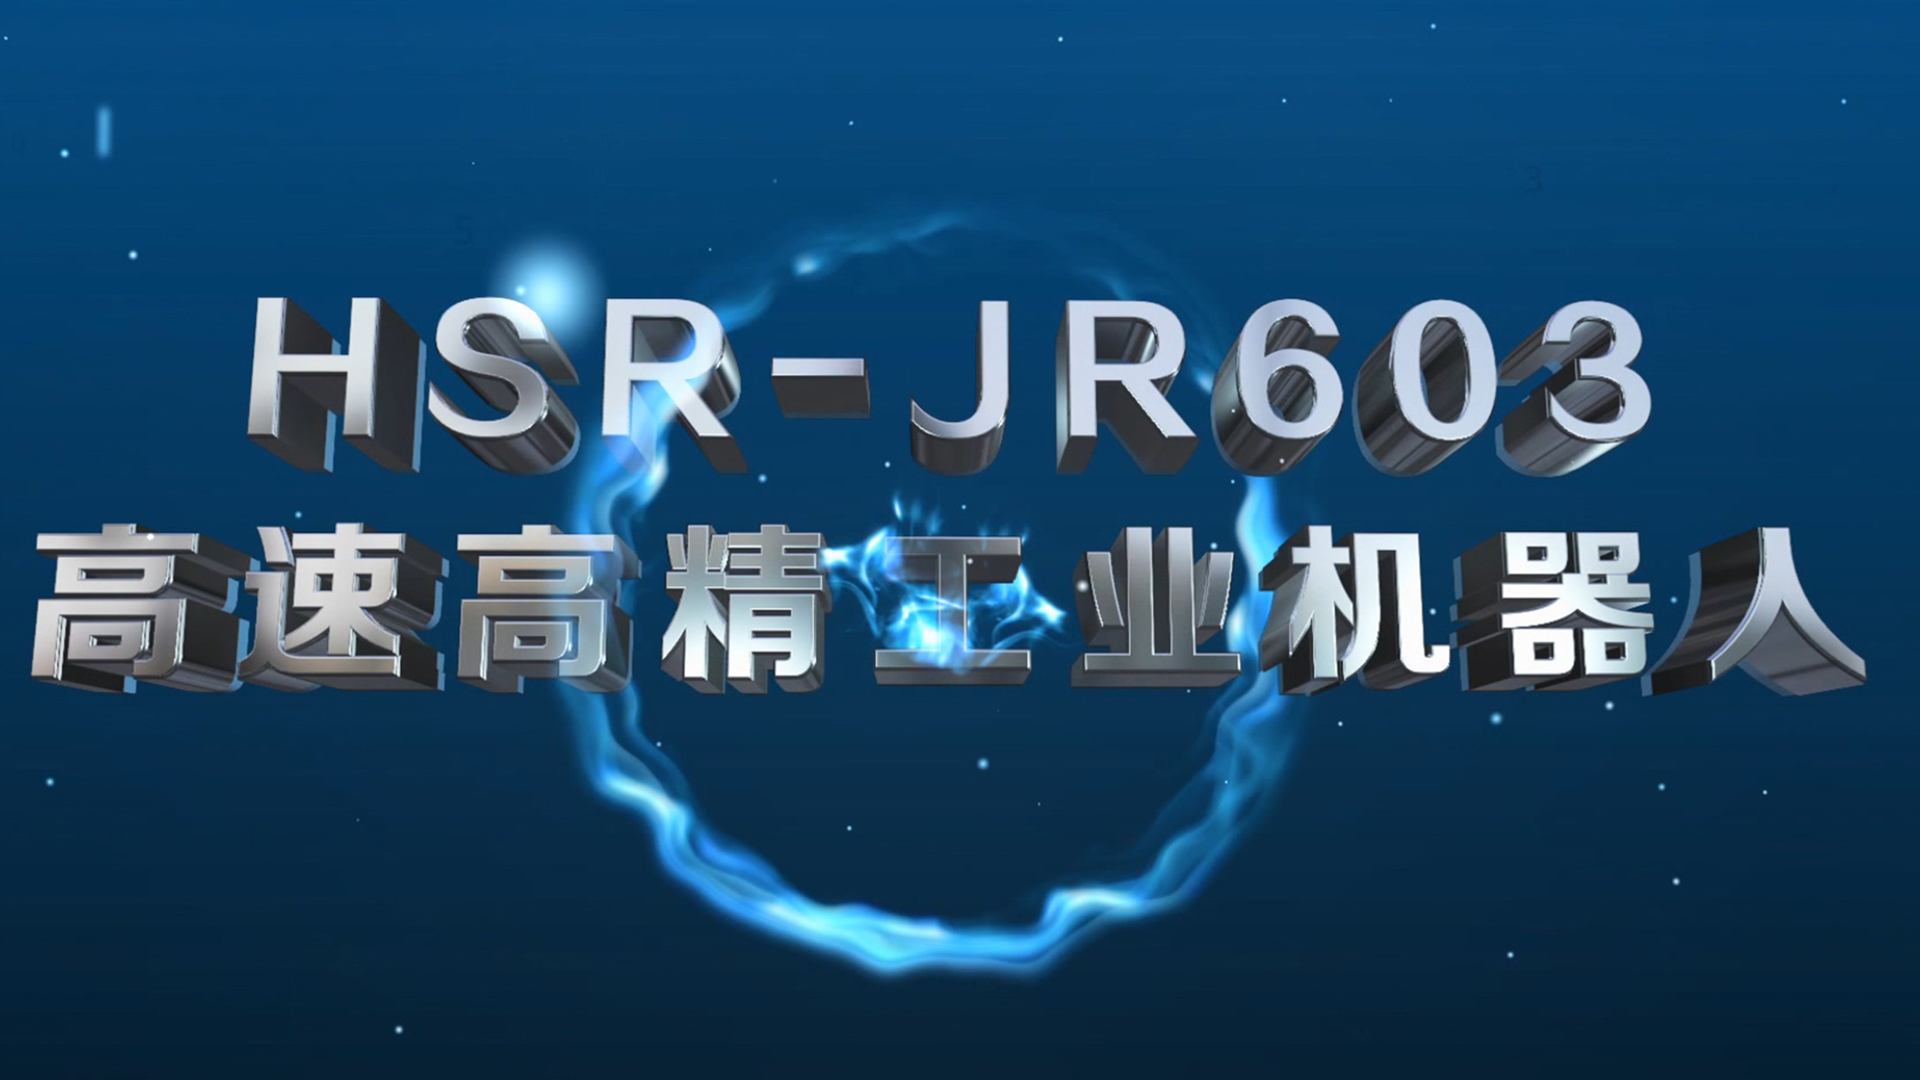 Video of JR603 high speed high precision industrial robot